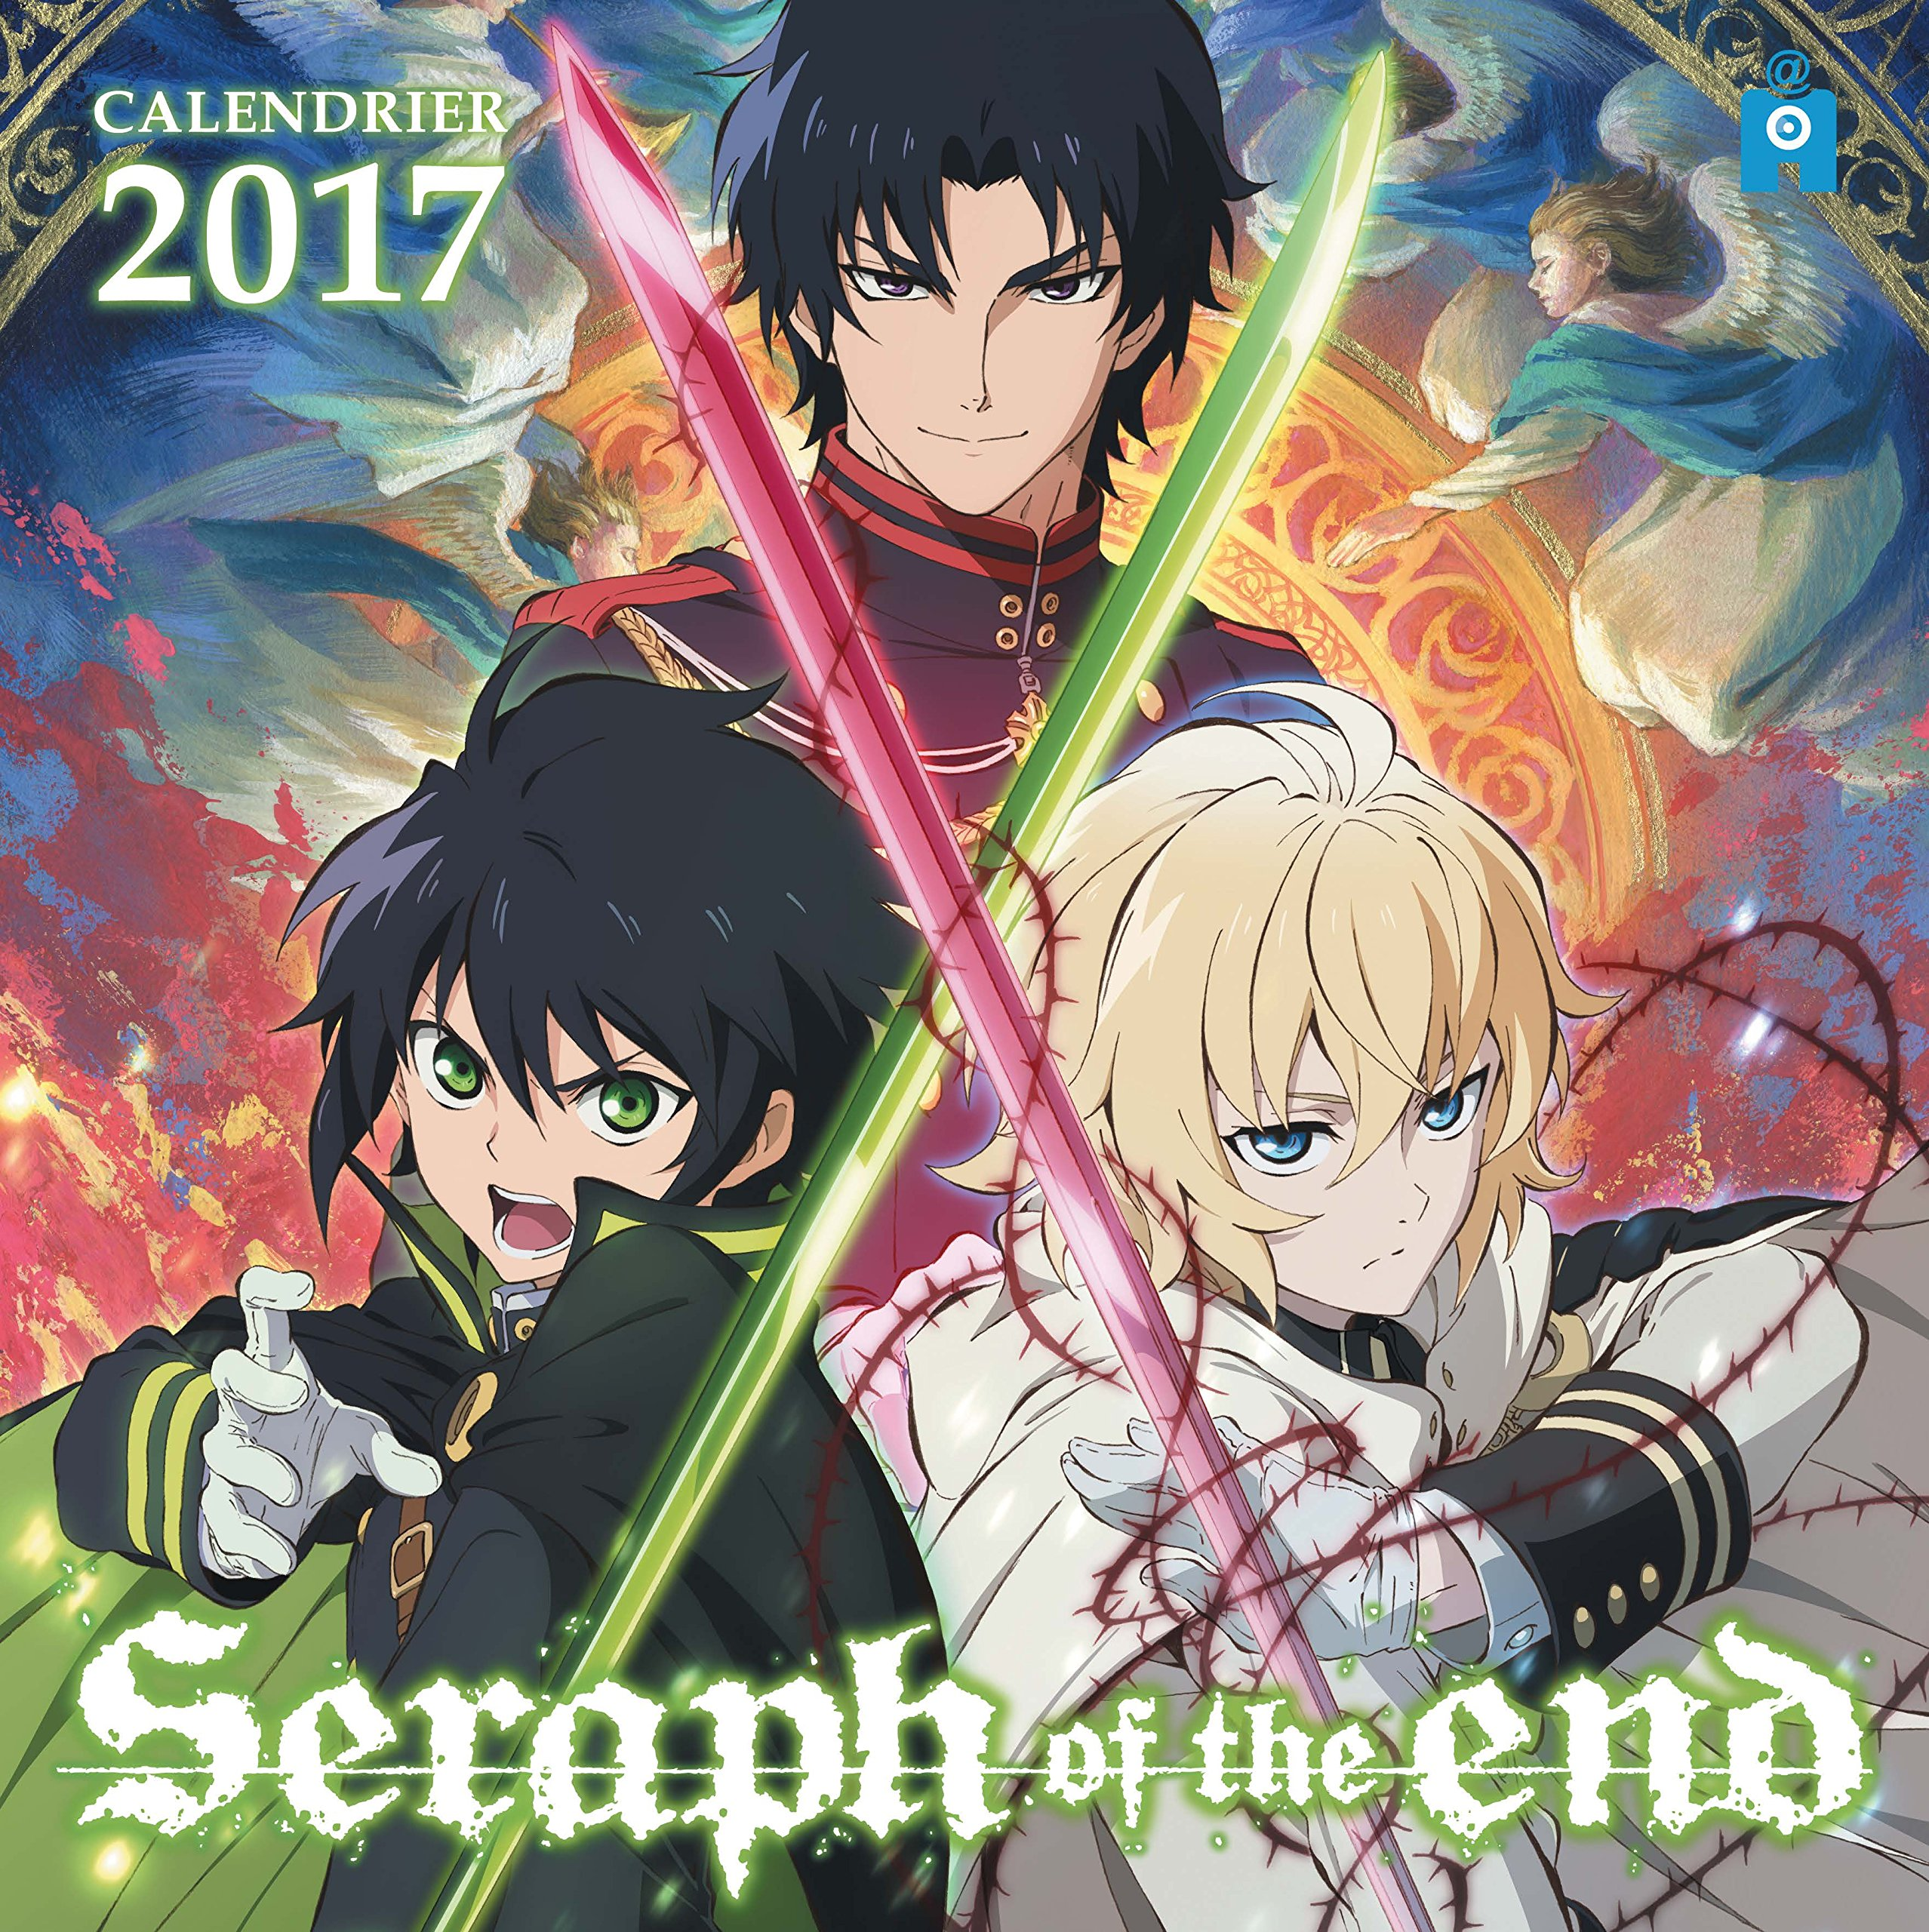 Calendrier Manga.Calendrier 2017 Seraph Of The End Ynnis Editions